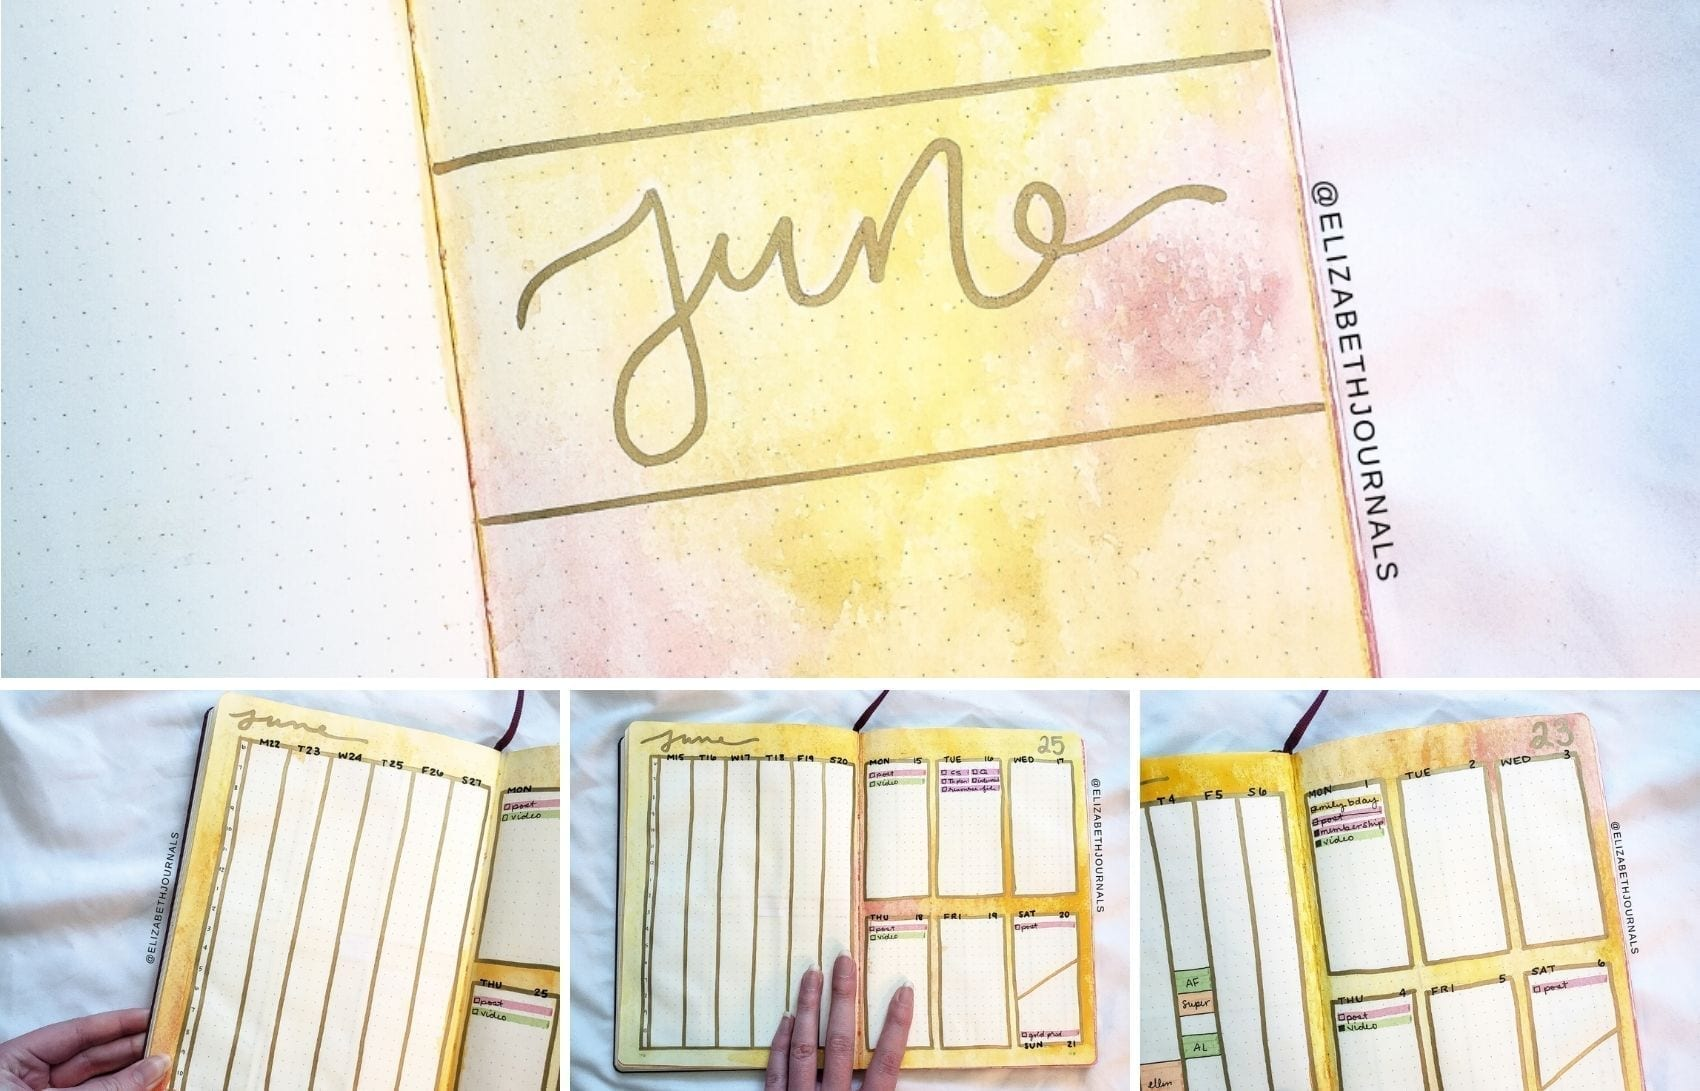 I am back and had a surge of inspiration to utilize watercolor in my yellow June bullet journal. Check out my sunny tie-dye themed June bullet journal!